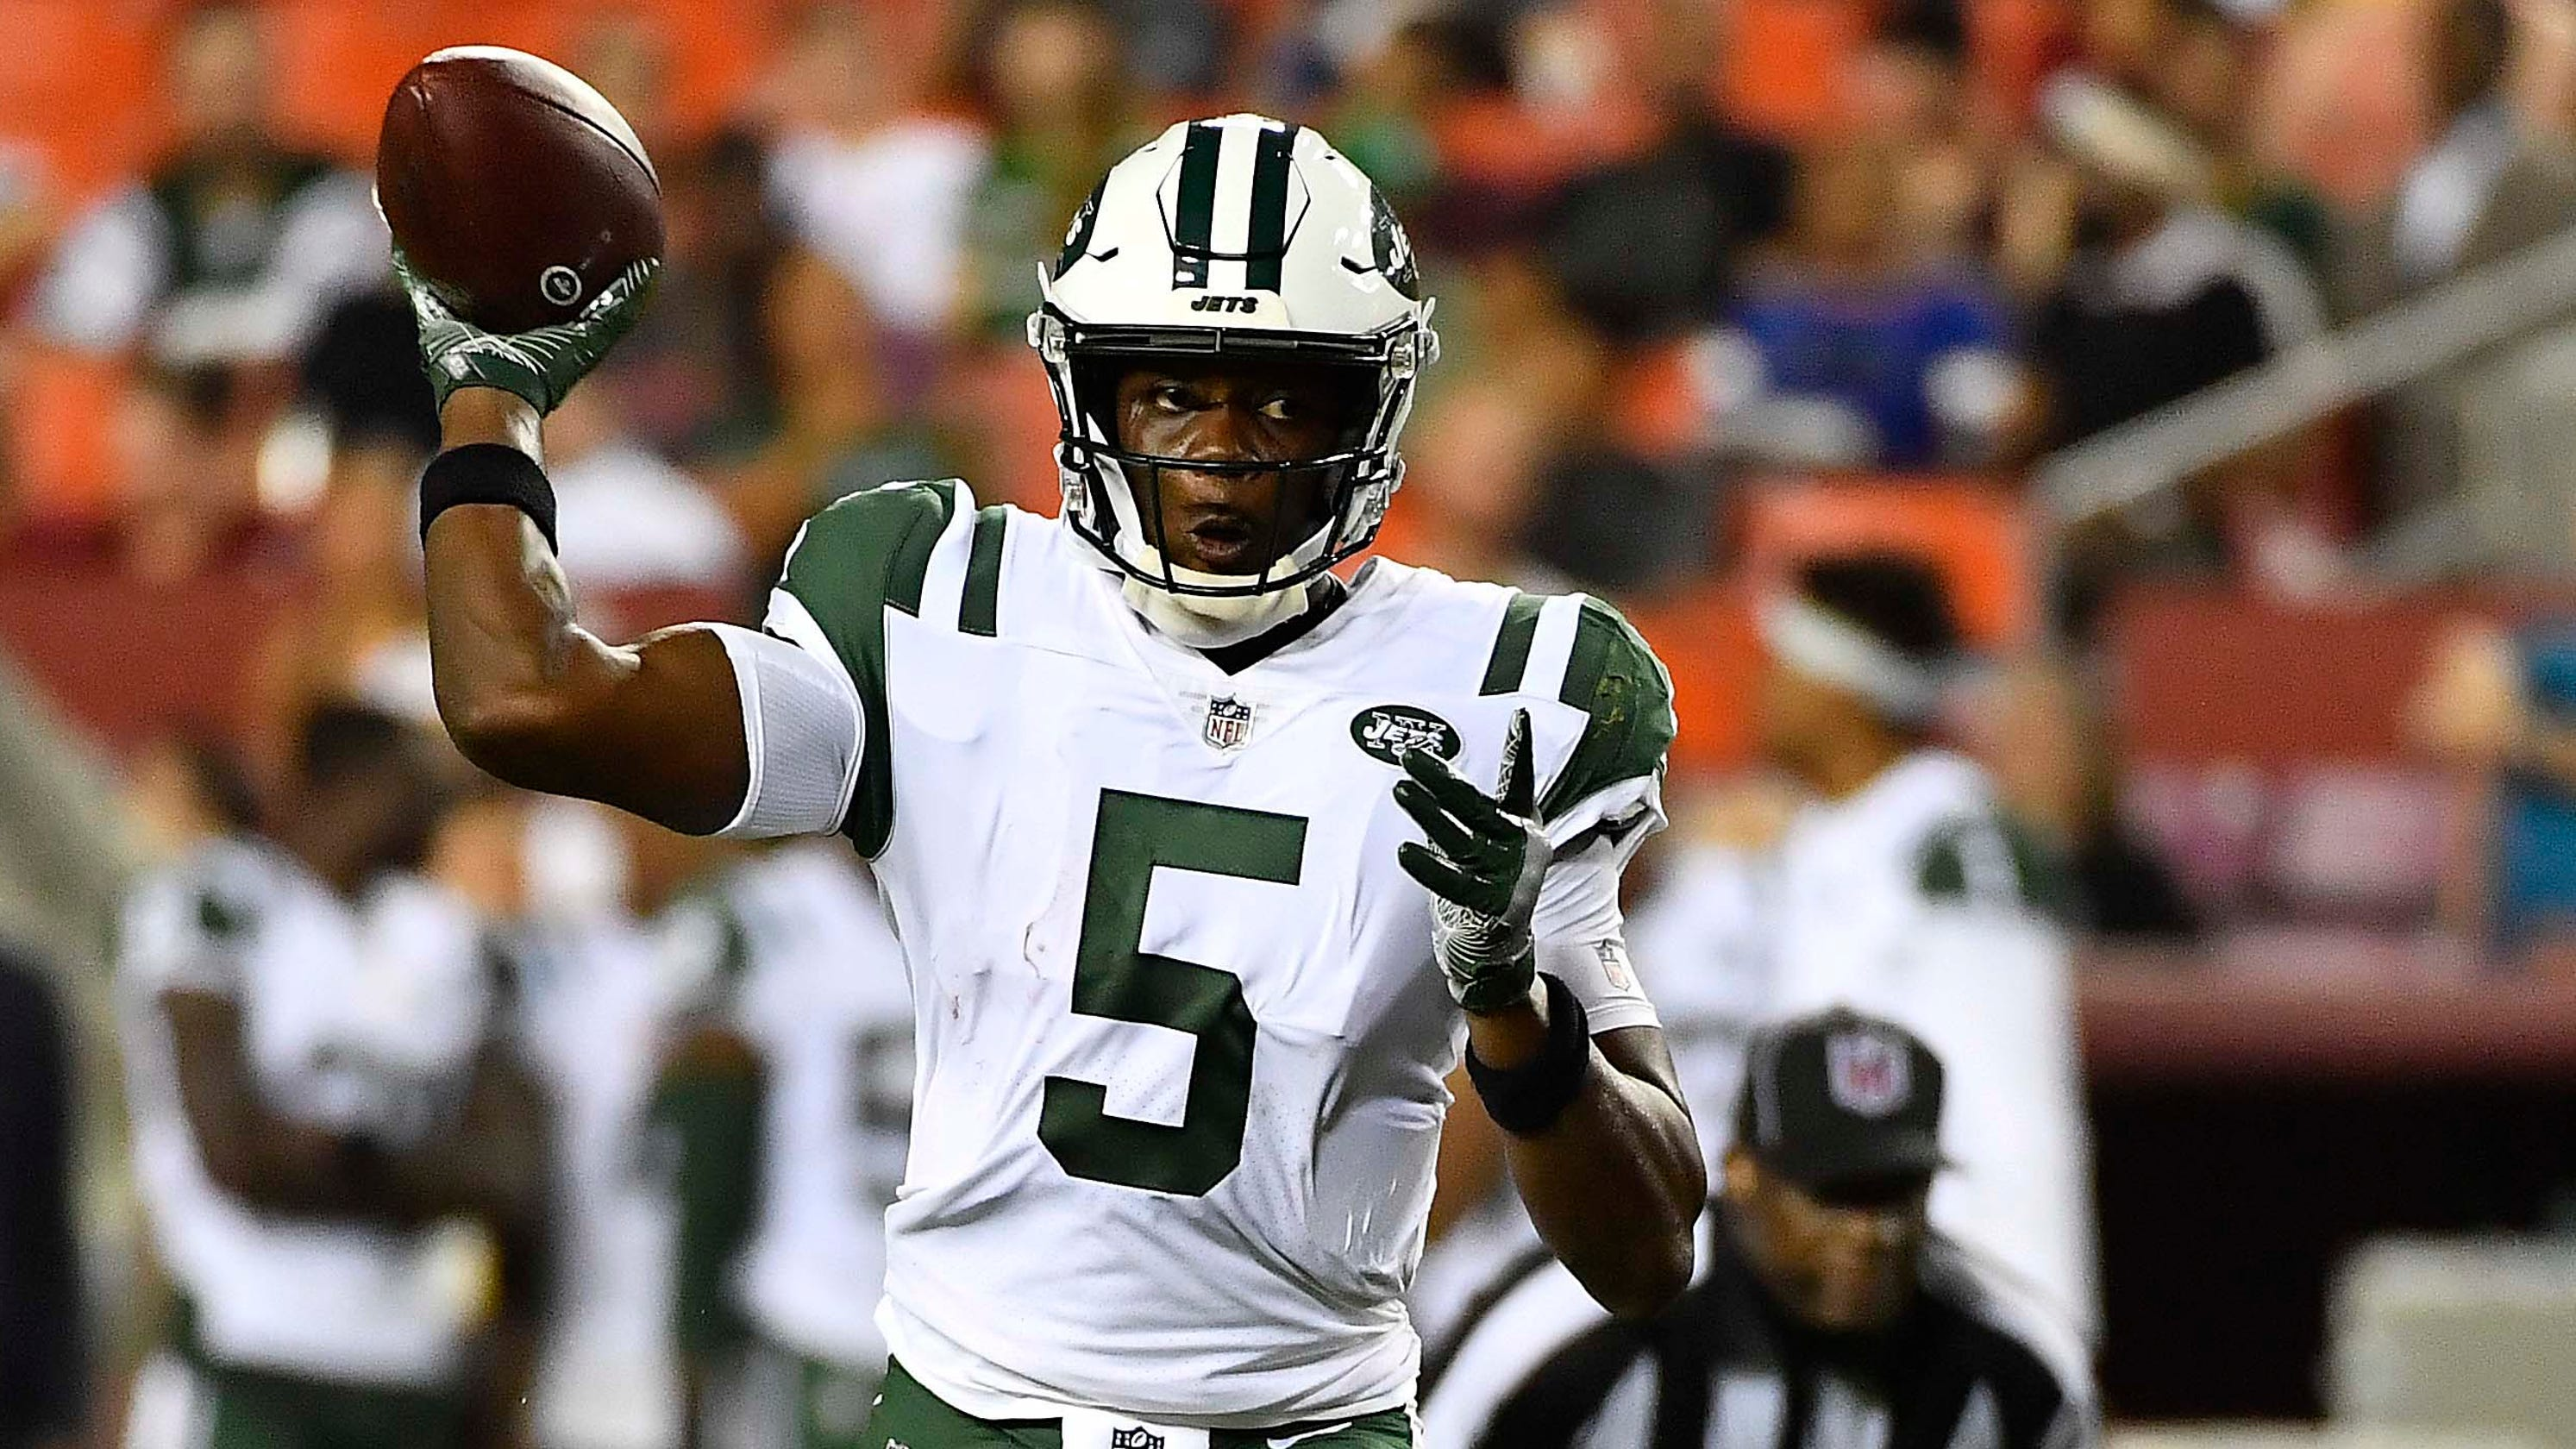 c165cef8890 NY Jets takeaways, observations from 2nd preseason game vs Redskins